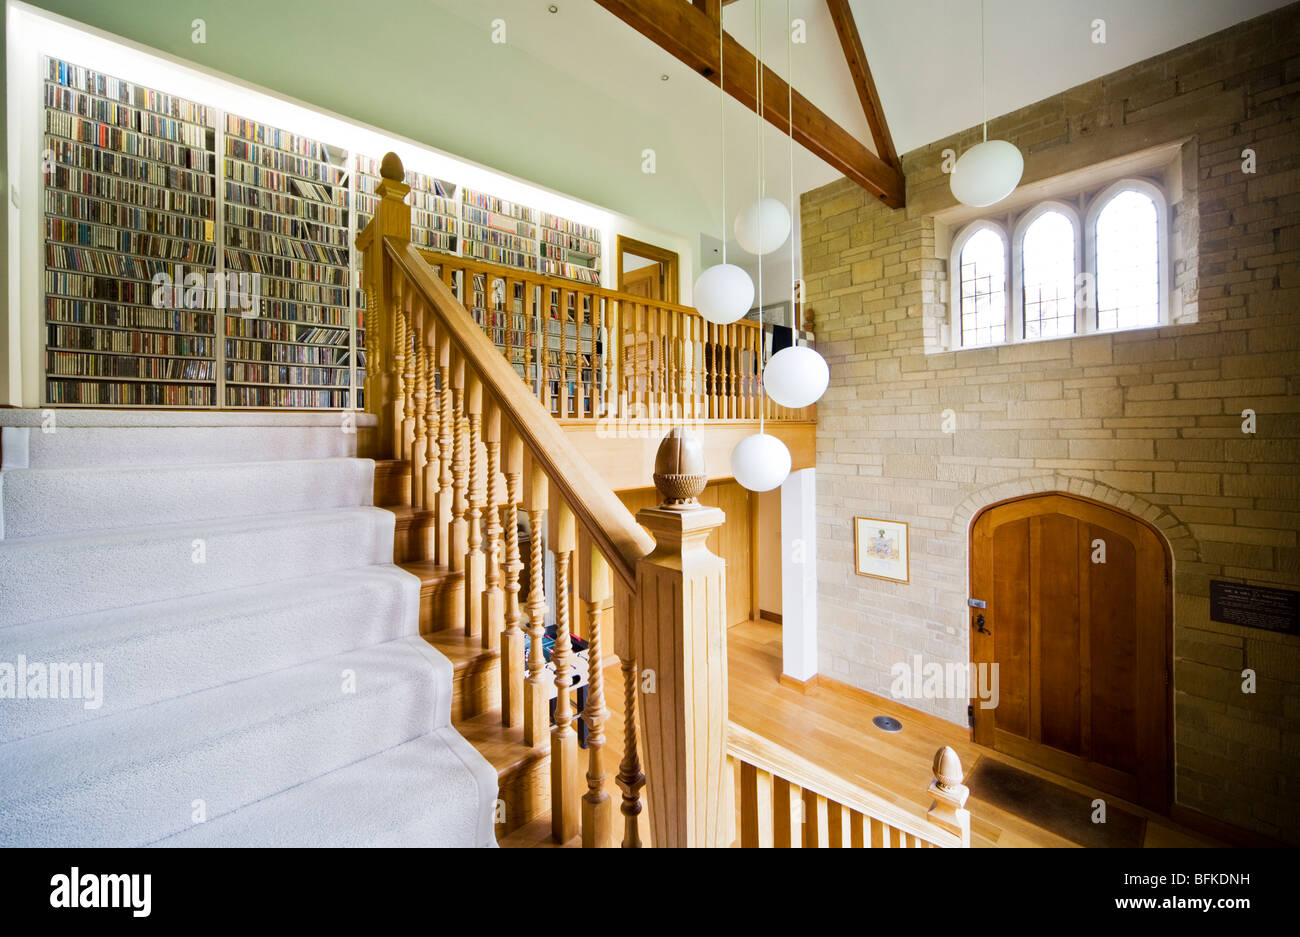 Staircase And Hallway Of A Modern Contemporary English Country House Mansion Or Manor In The UK